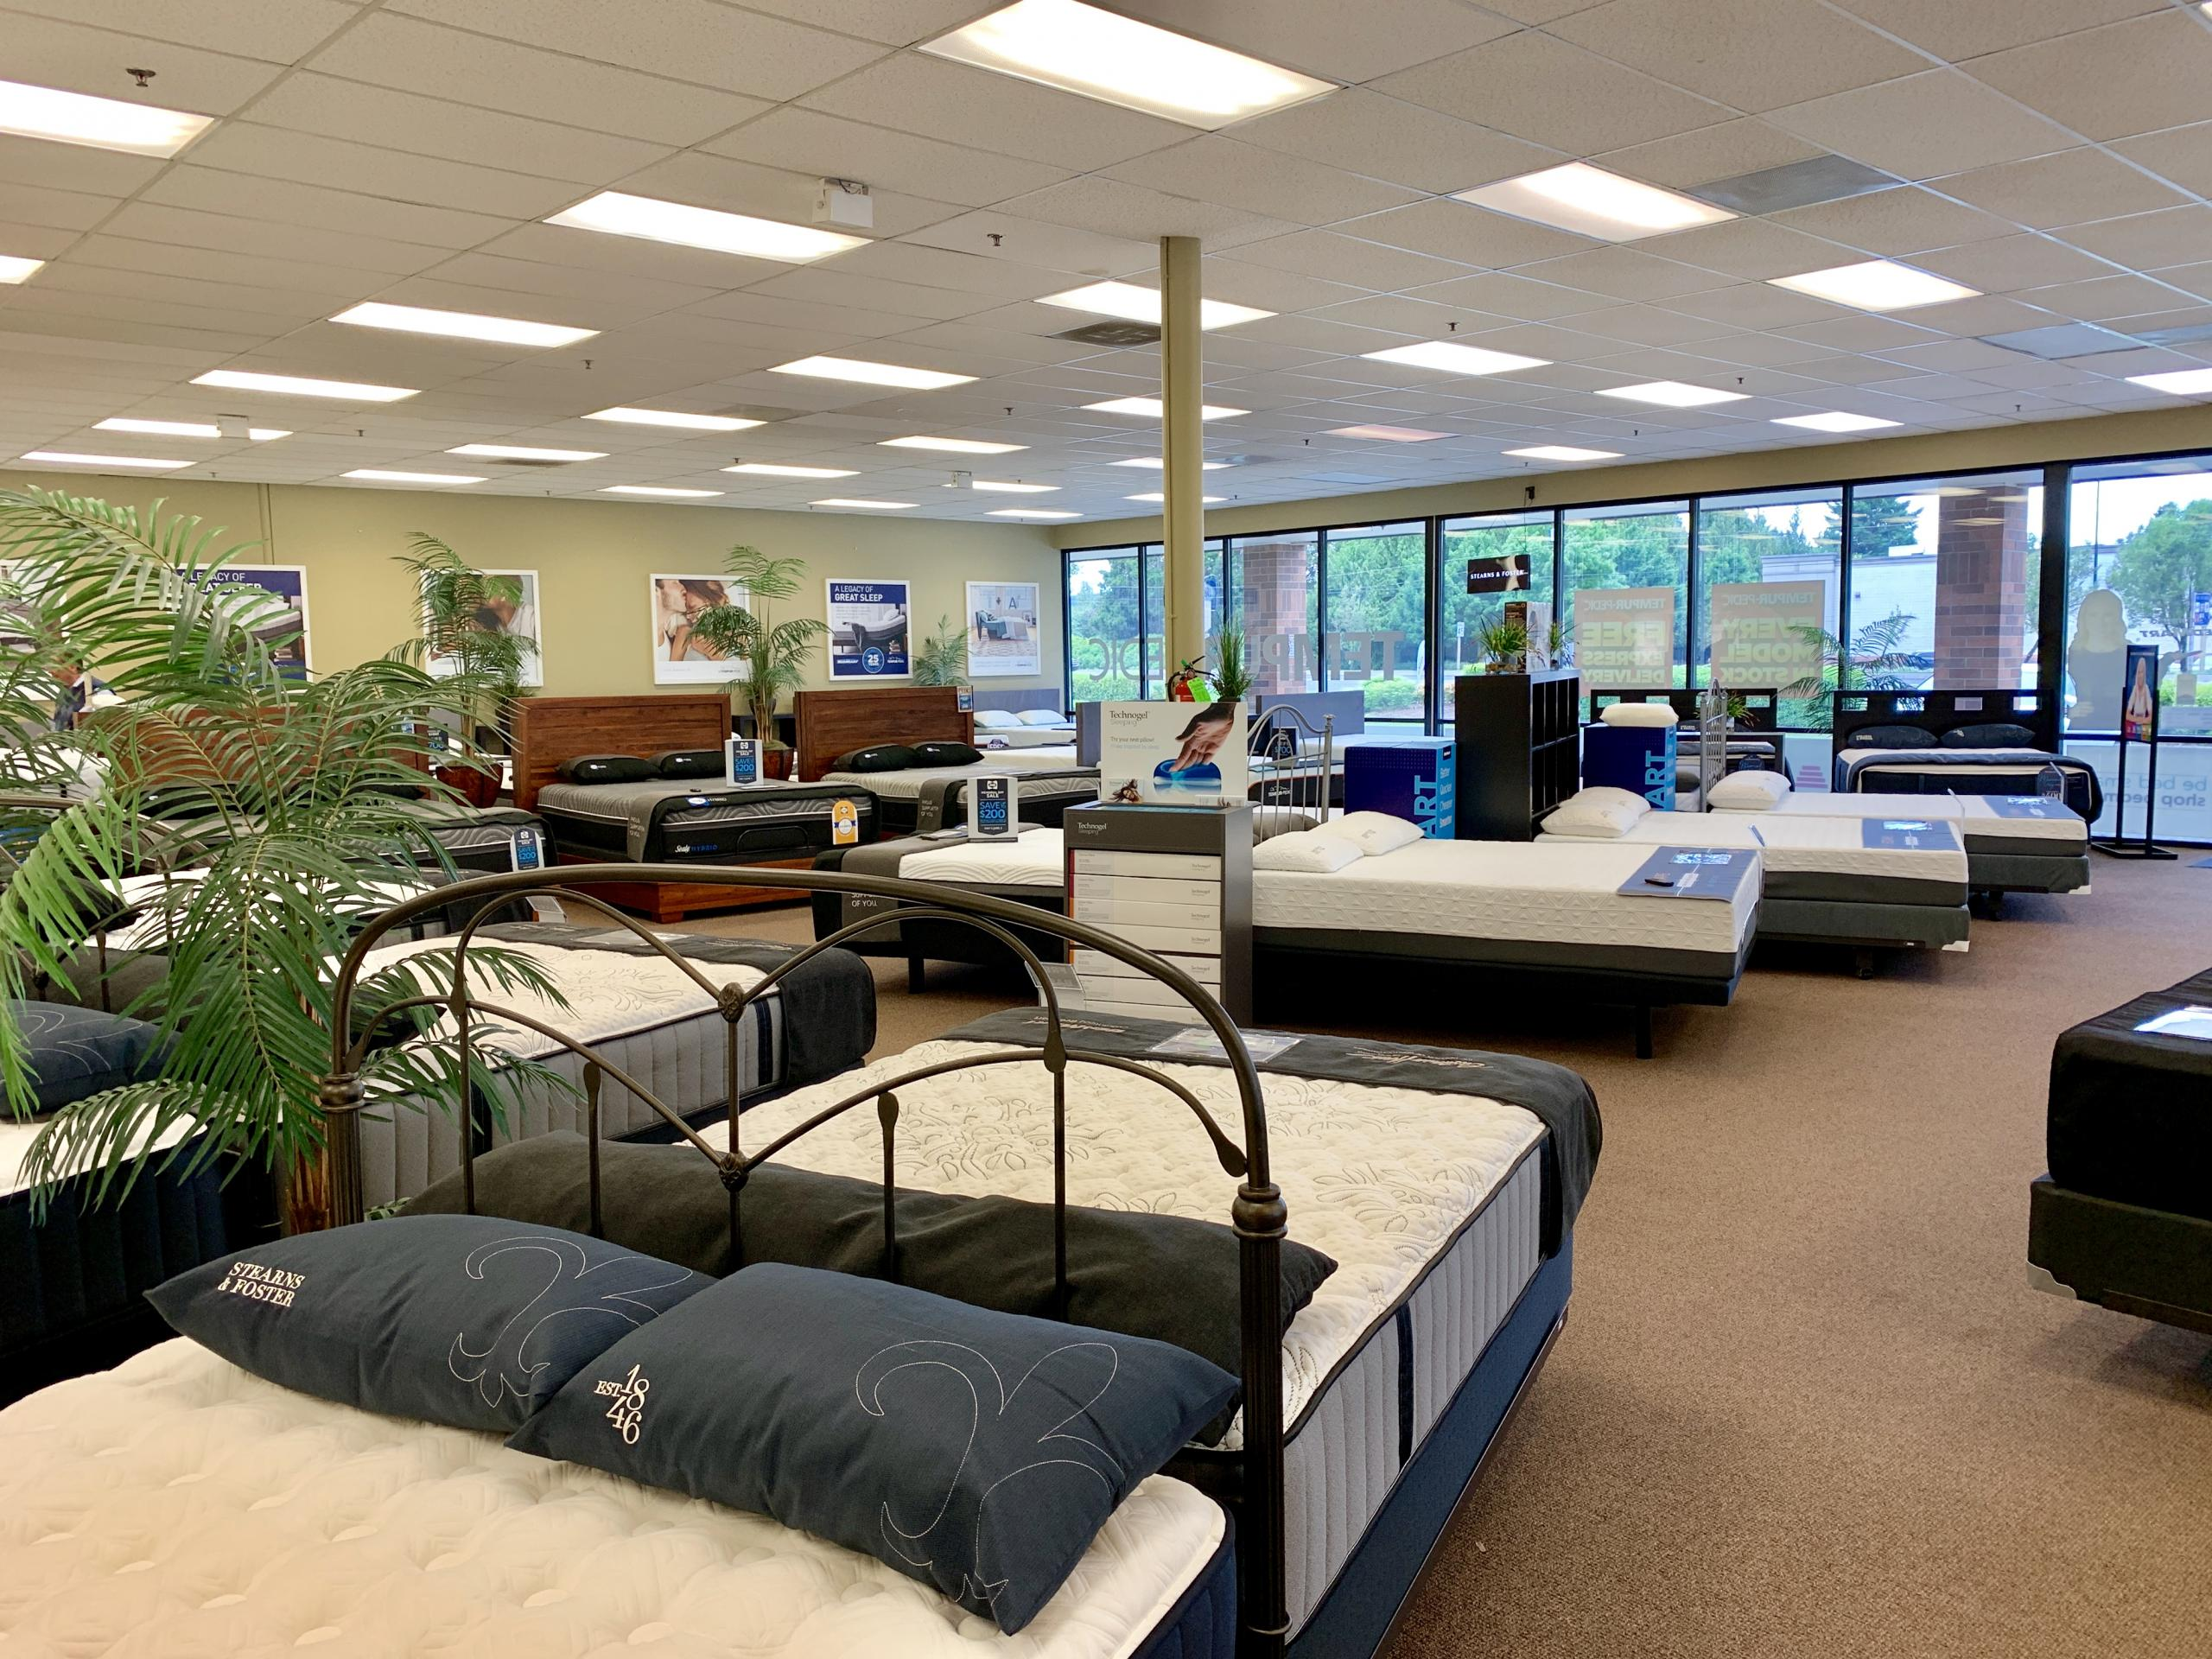 sherwood mattress store interior